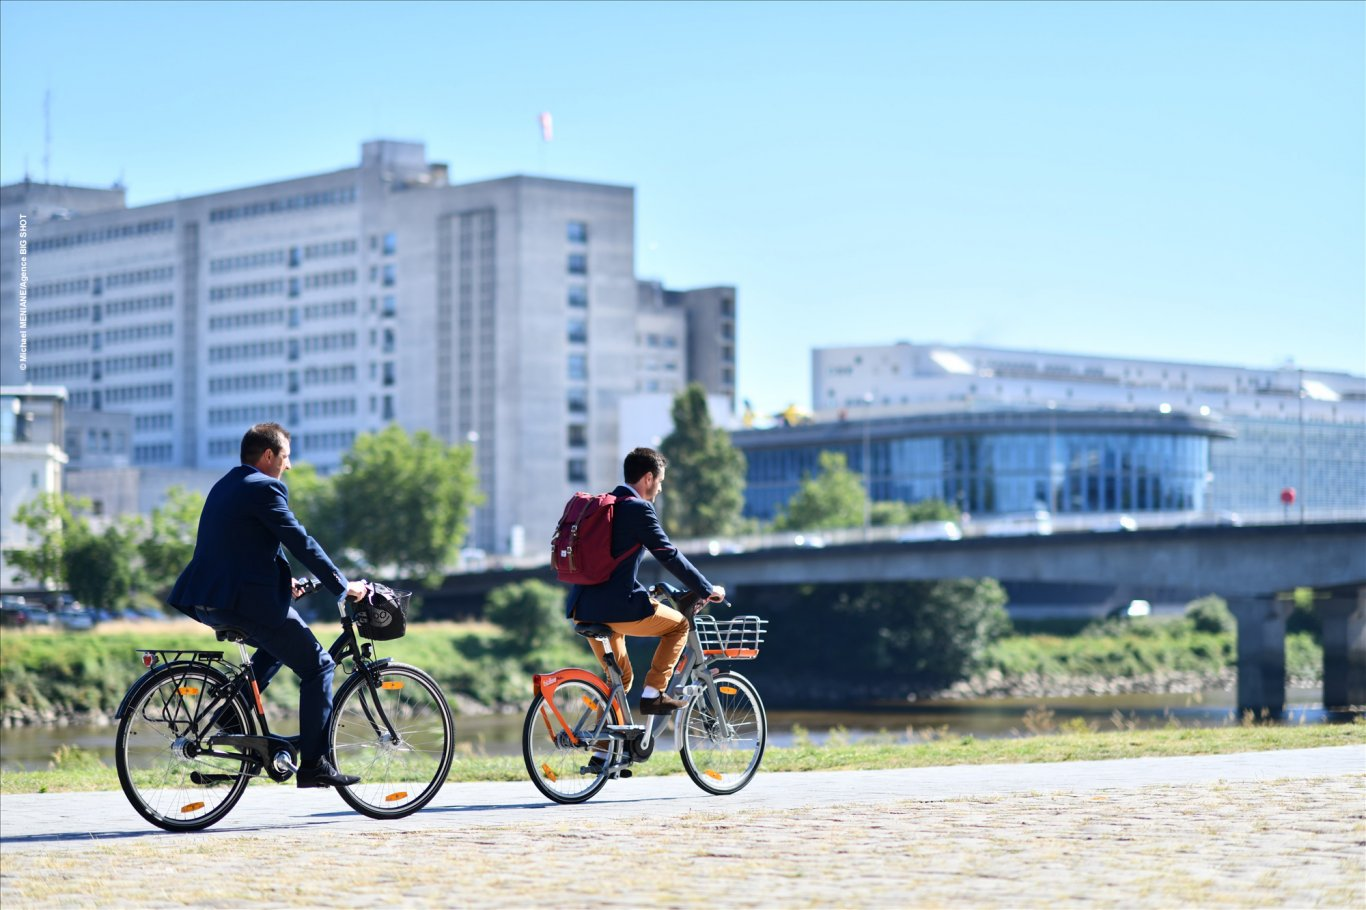 Lyon Nantes Record Results For New Mobility Services Rolled Out By Jcdecaux In